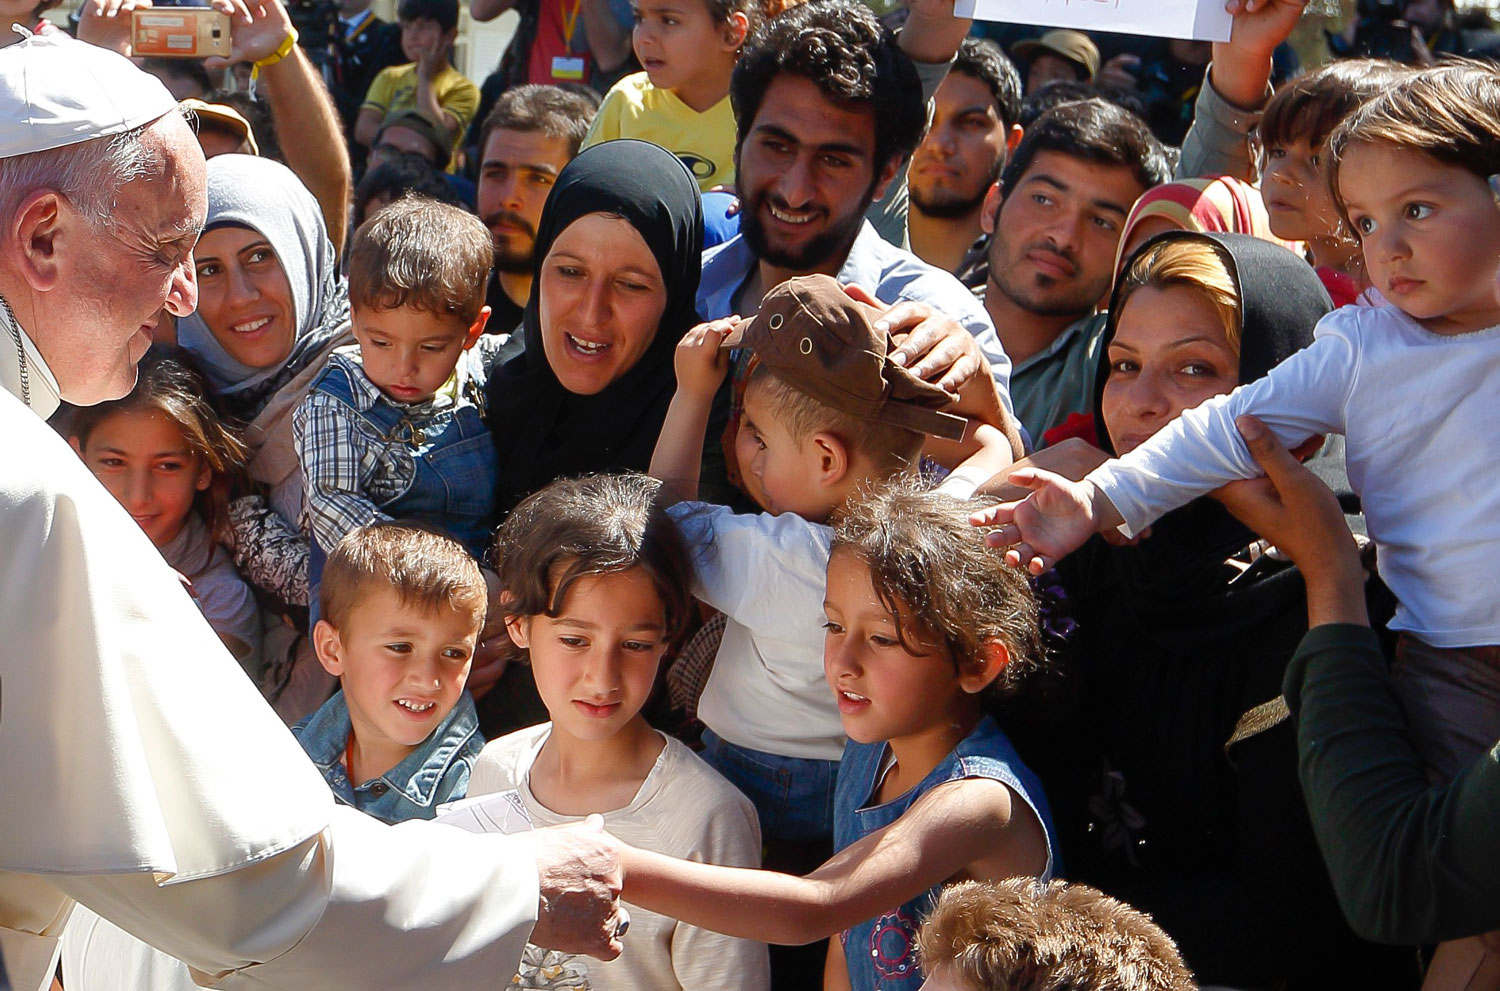 pope francis compassion Migrants and Refugees